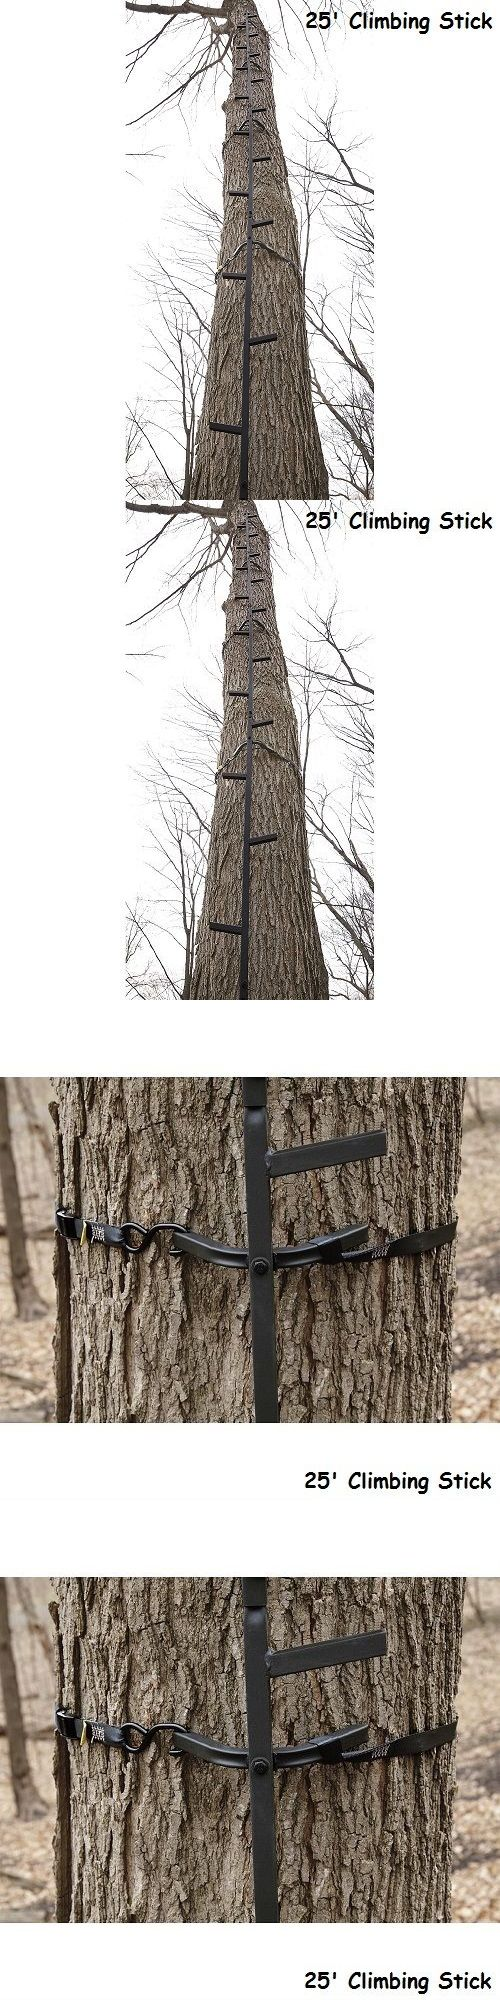 Blind and Tree Stand Accessories 177912: Tree Stand 25 Climbing Sticks Hunting Ladder Deer Hog Bow Rifle Supplies Hunt BUY IT NOW ONLY: $64.97